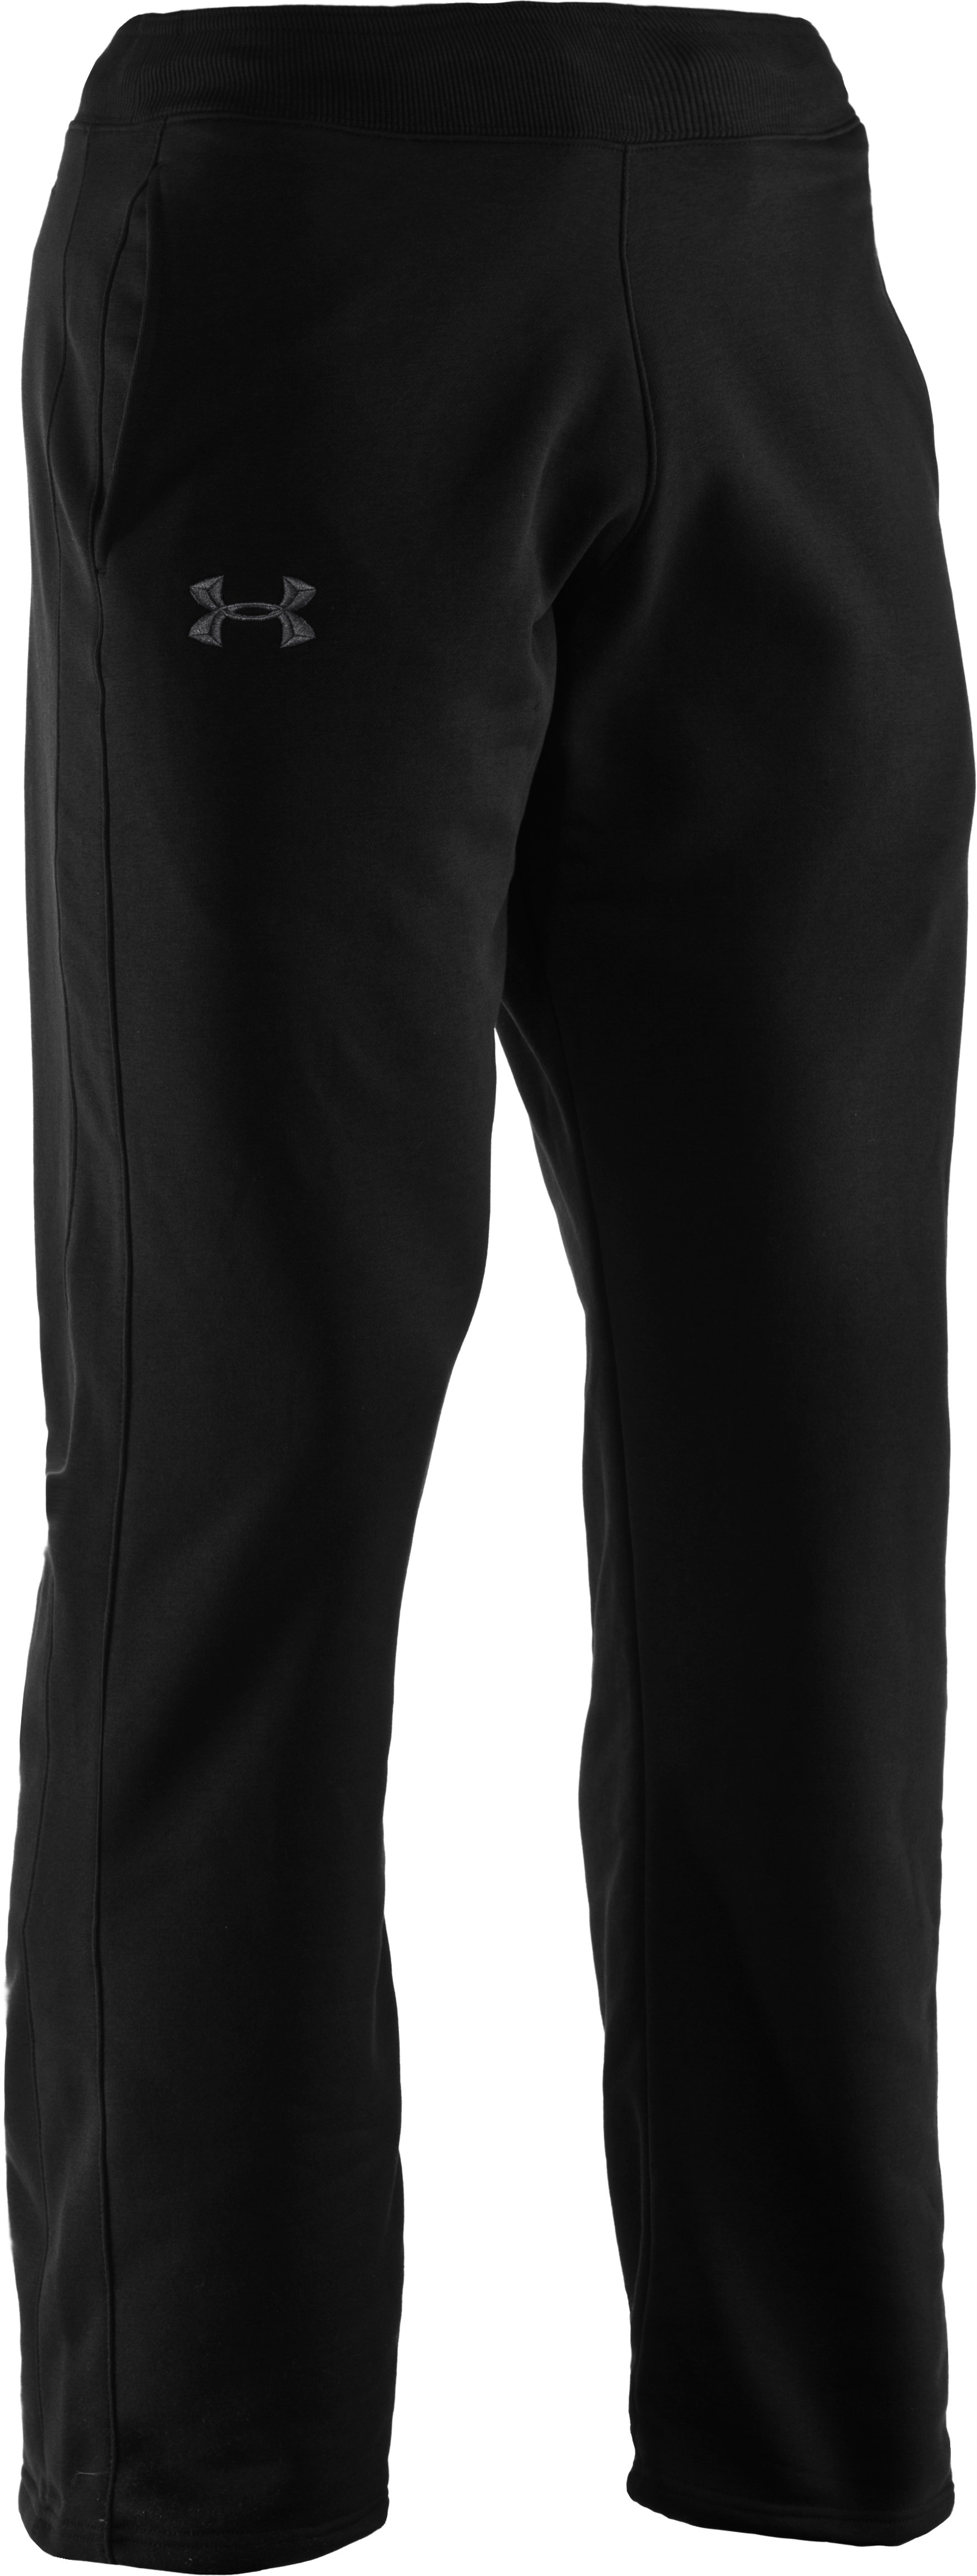 Men's Charged Cotton® Storm Pants, Black , undefined